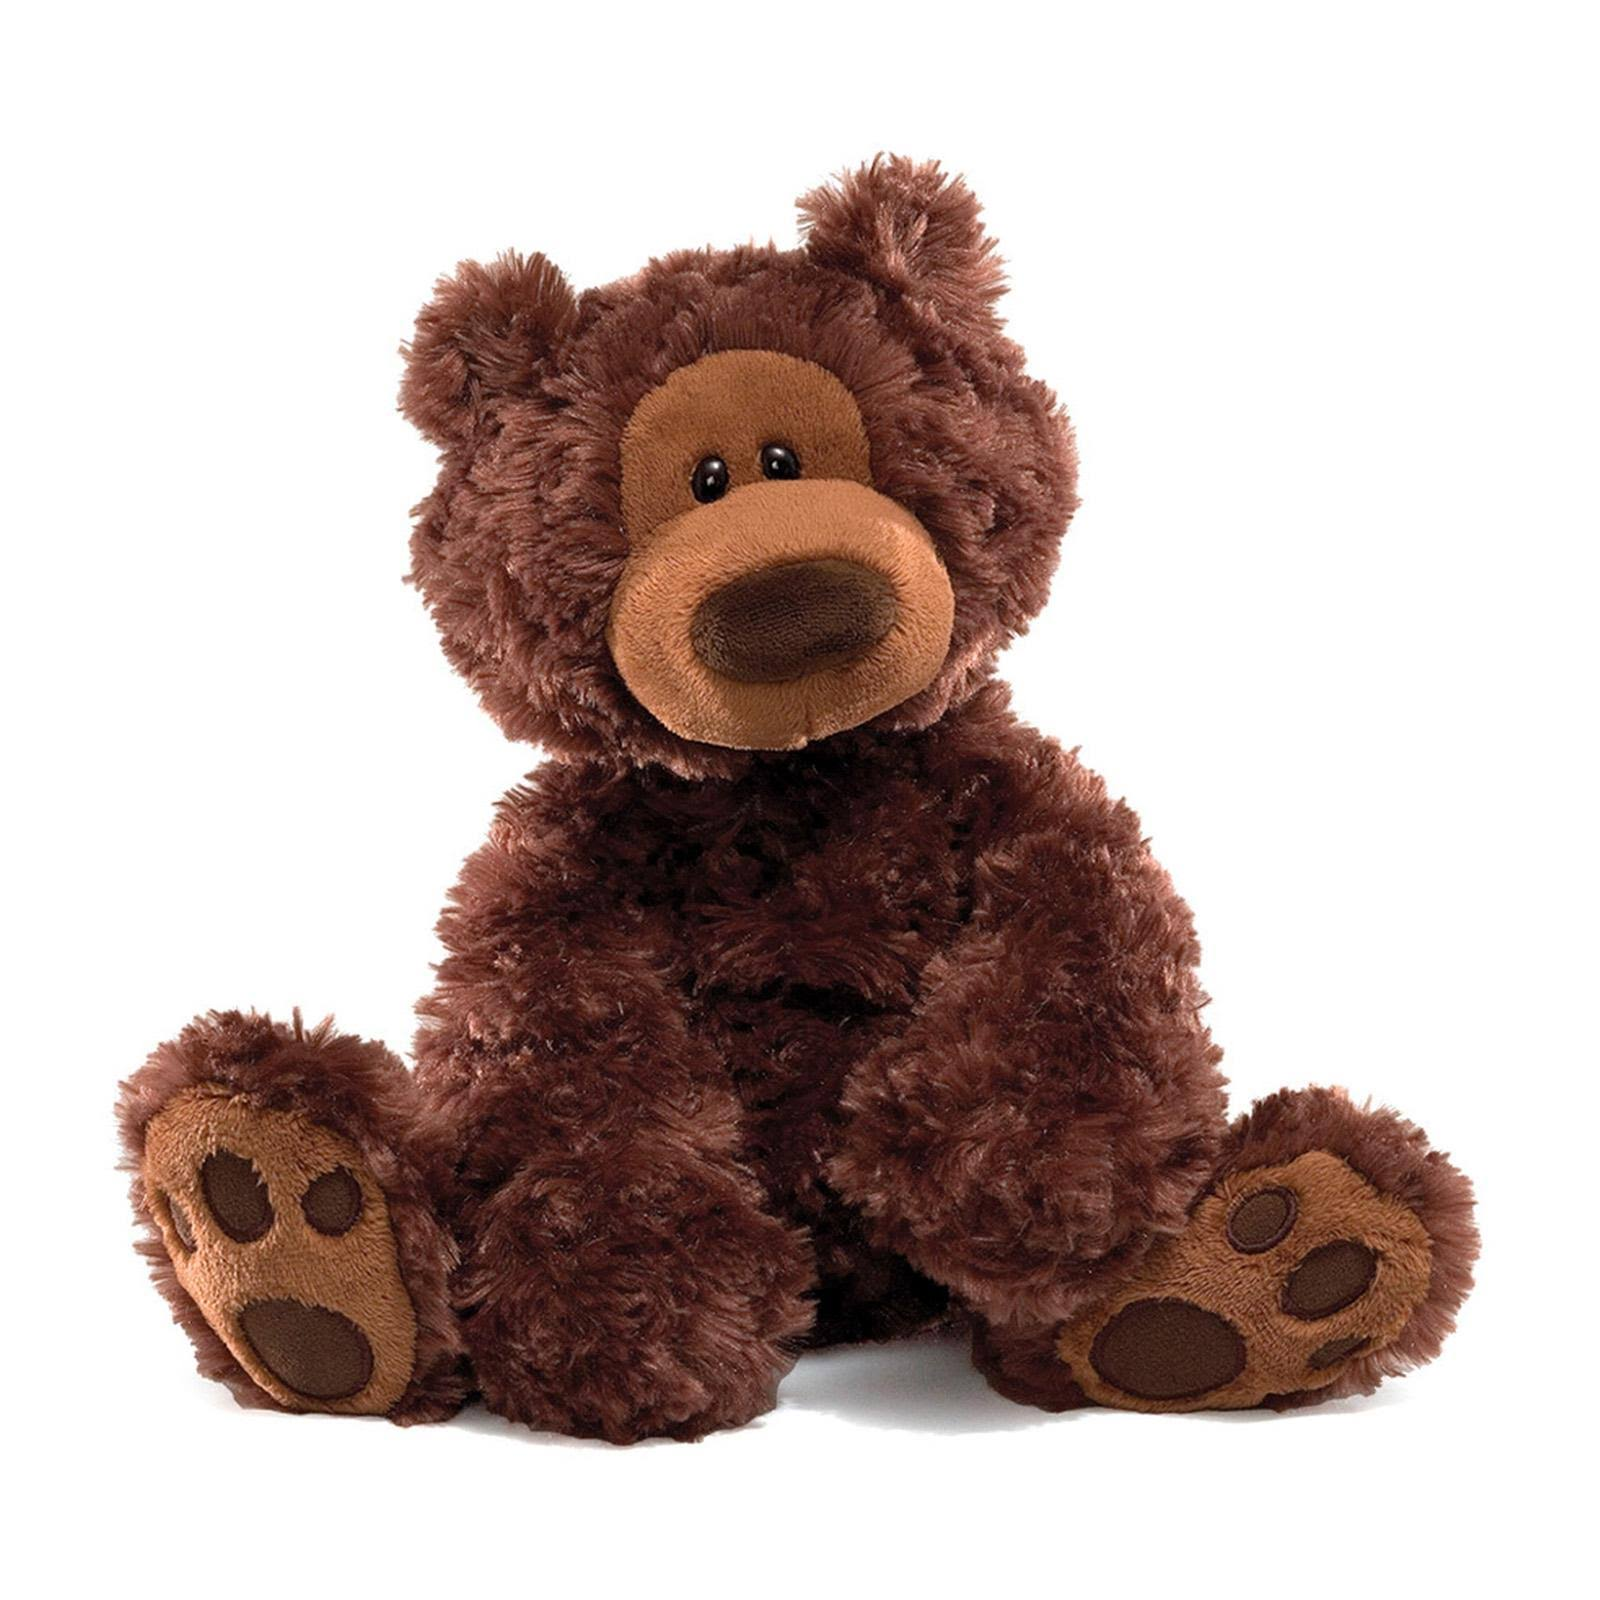 Gund Philbin Teddy Bear Plush Toy - Chocolate, 12″